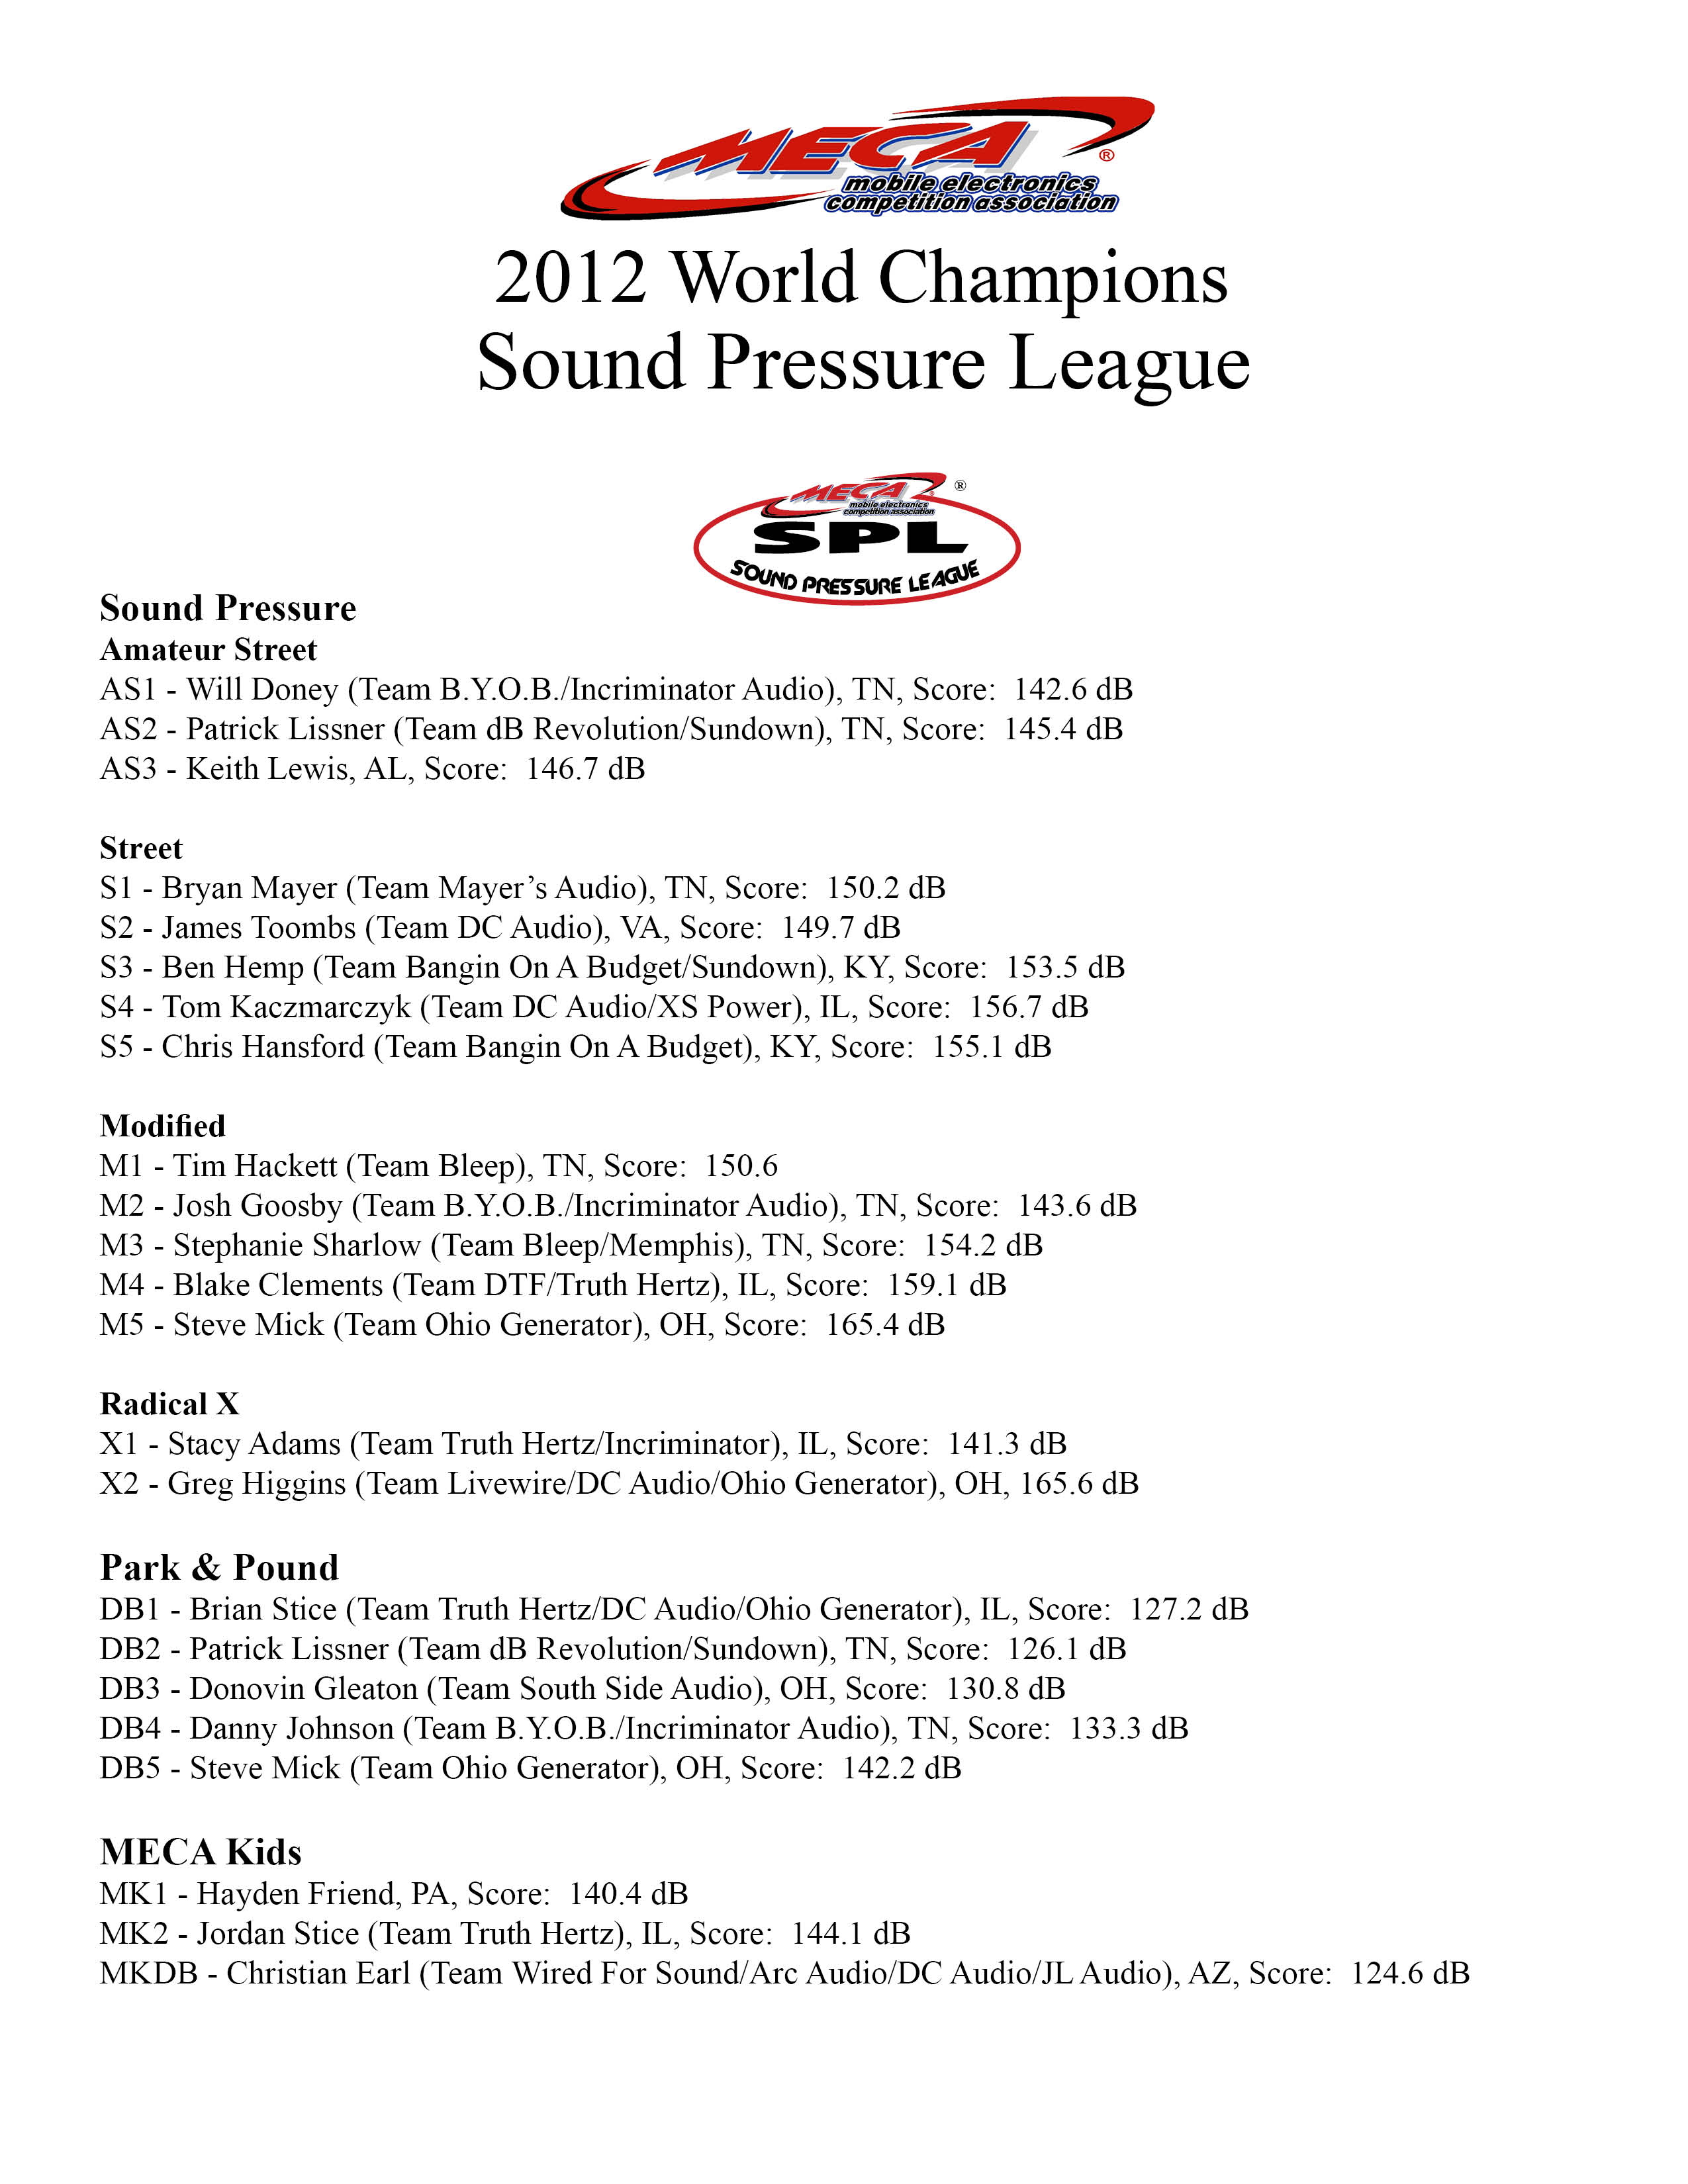 2012 Sound Pressure League Champions